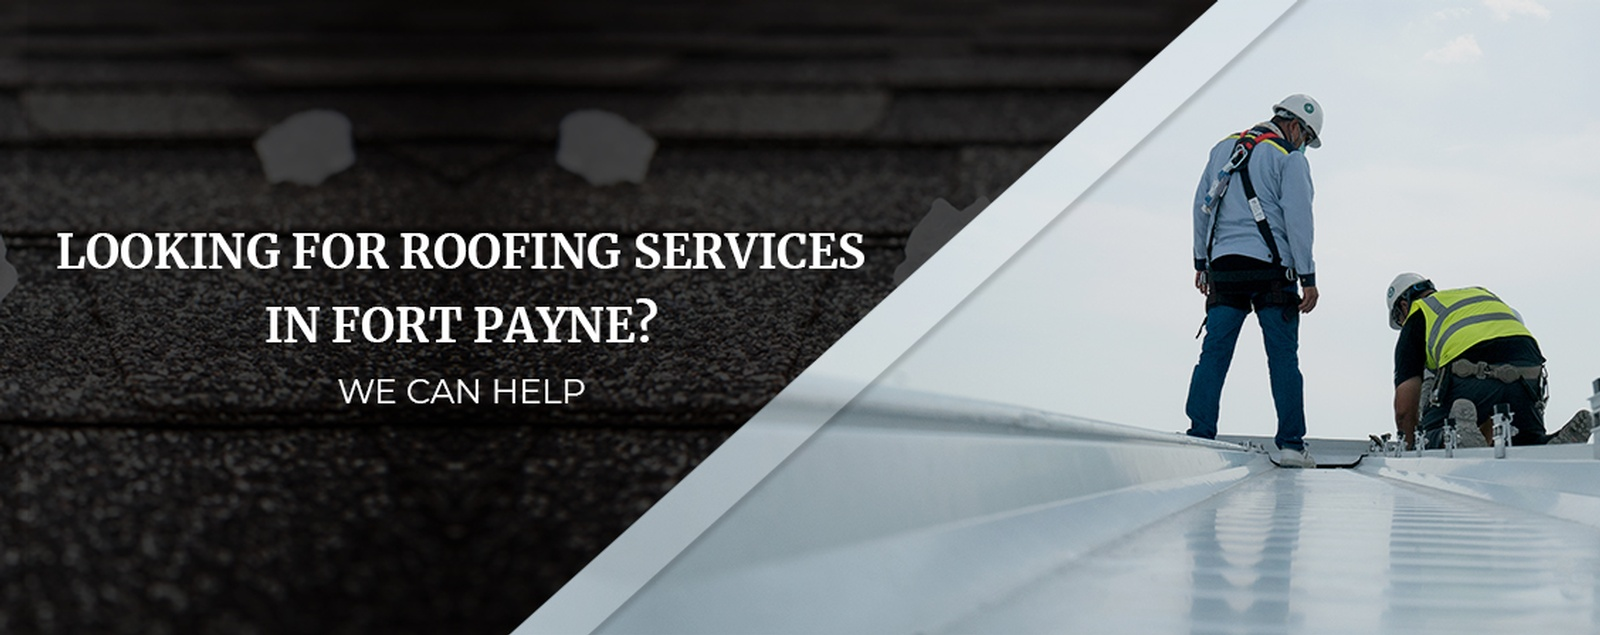 Looking For Roofing Services In Fort Payne  We Can Help